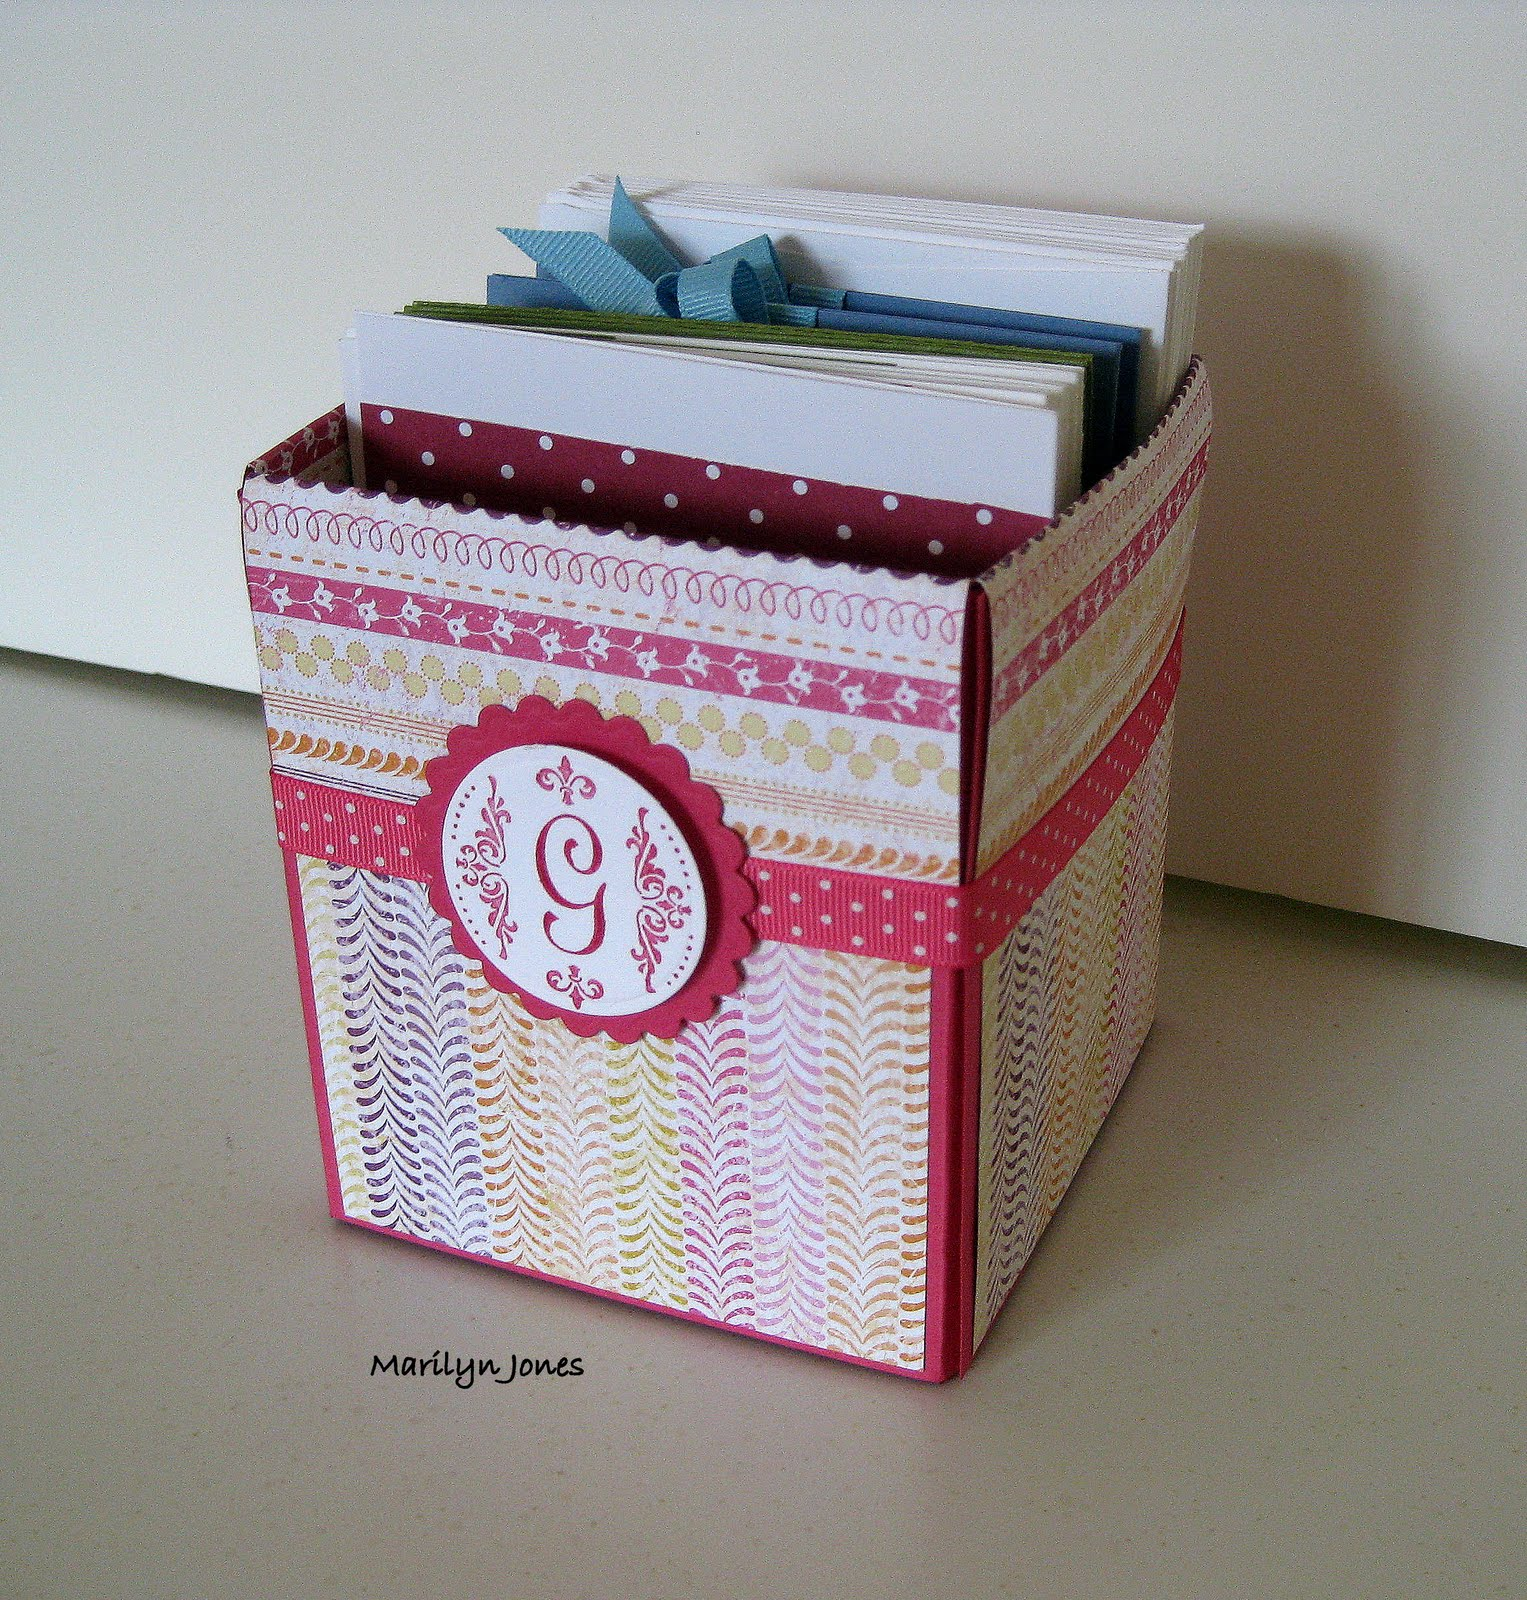 Paper dreams decorative gift box and cards